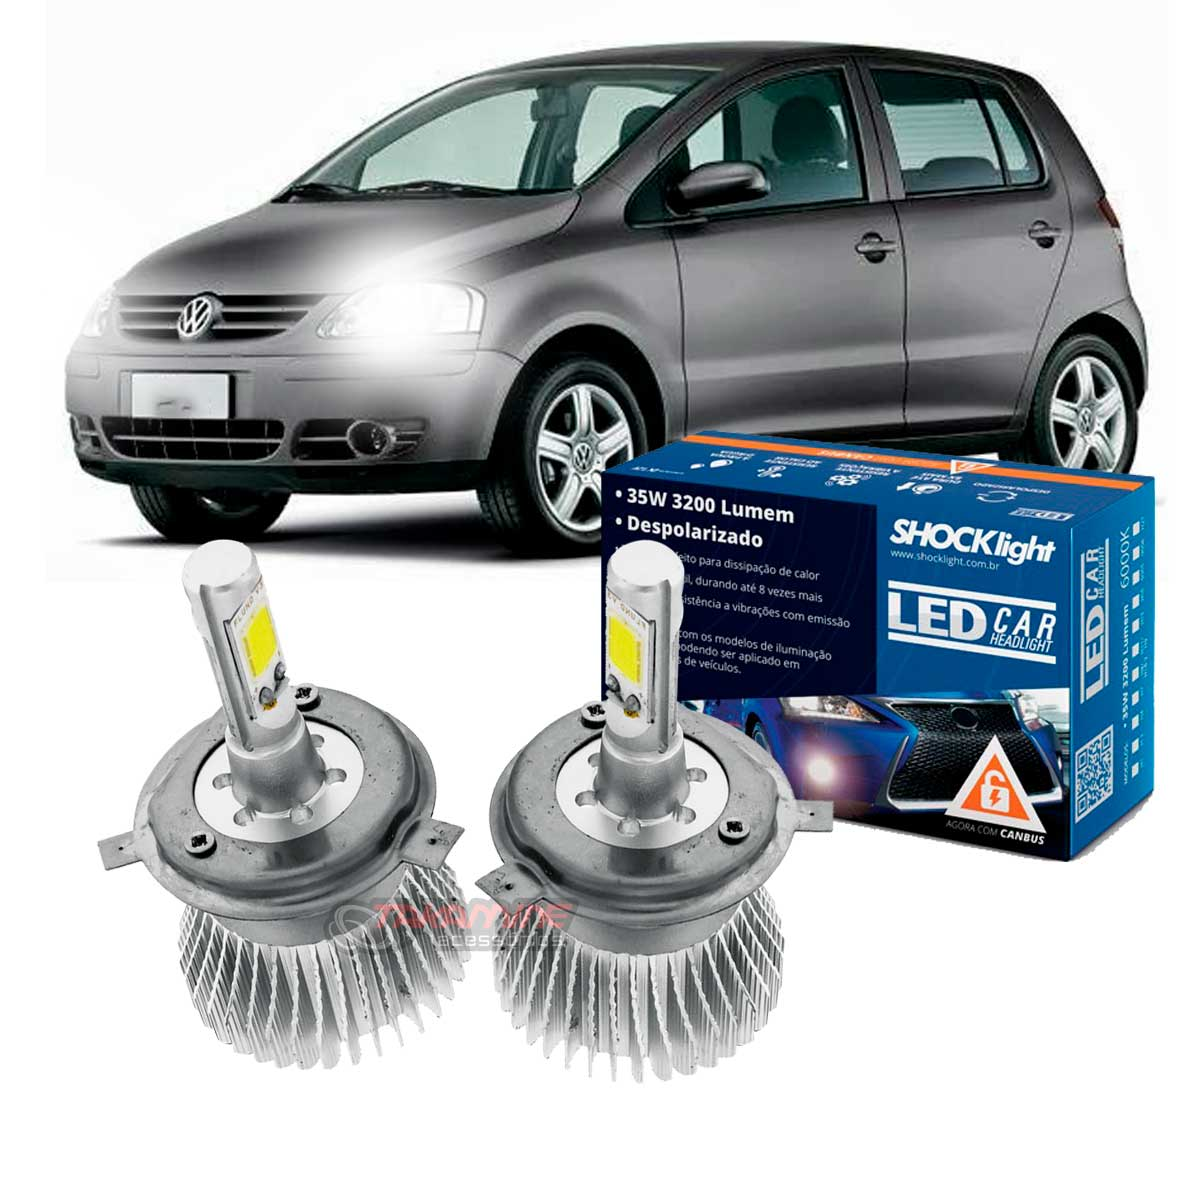 Kit LED Fox 2003 2004 2005 2006 2007 2008 2009 tipo xenon farol alto e baixo H4 35/35W Headlight